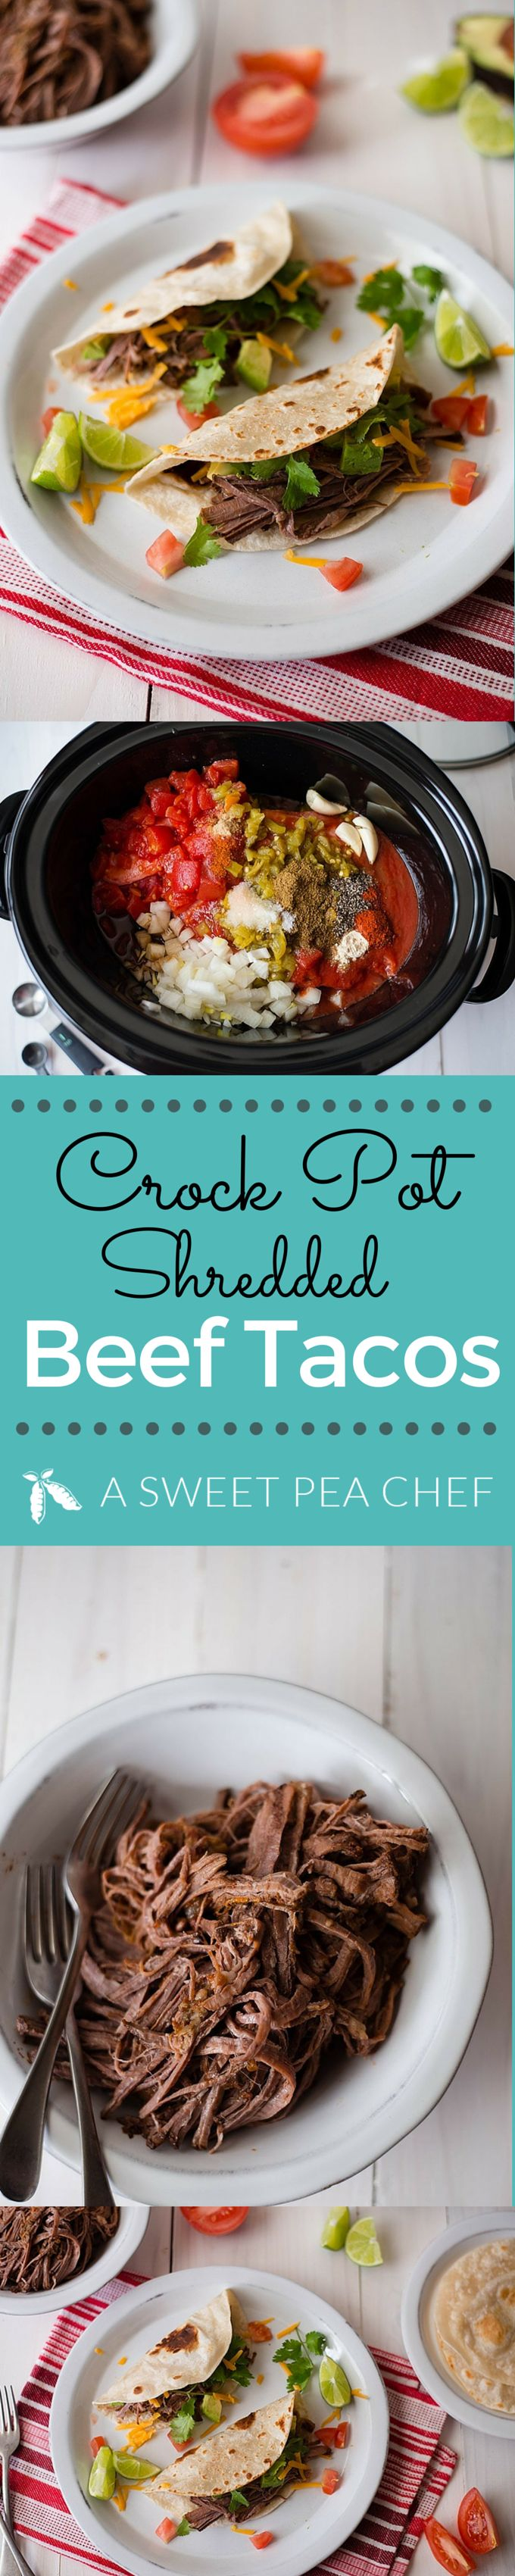 Crockpot Shredded Beef Tacos This is a great Crock Pot Shredded Beef Tacos recipe that works great in a slow cooker or Dutch oven. Plus a homemade taco seasoning. Recipe and photos by Lacey Baier | www.asweetpeachef.com